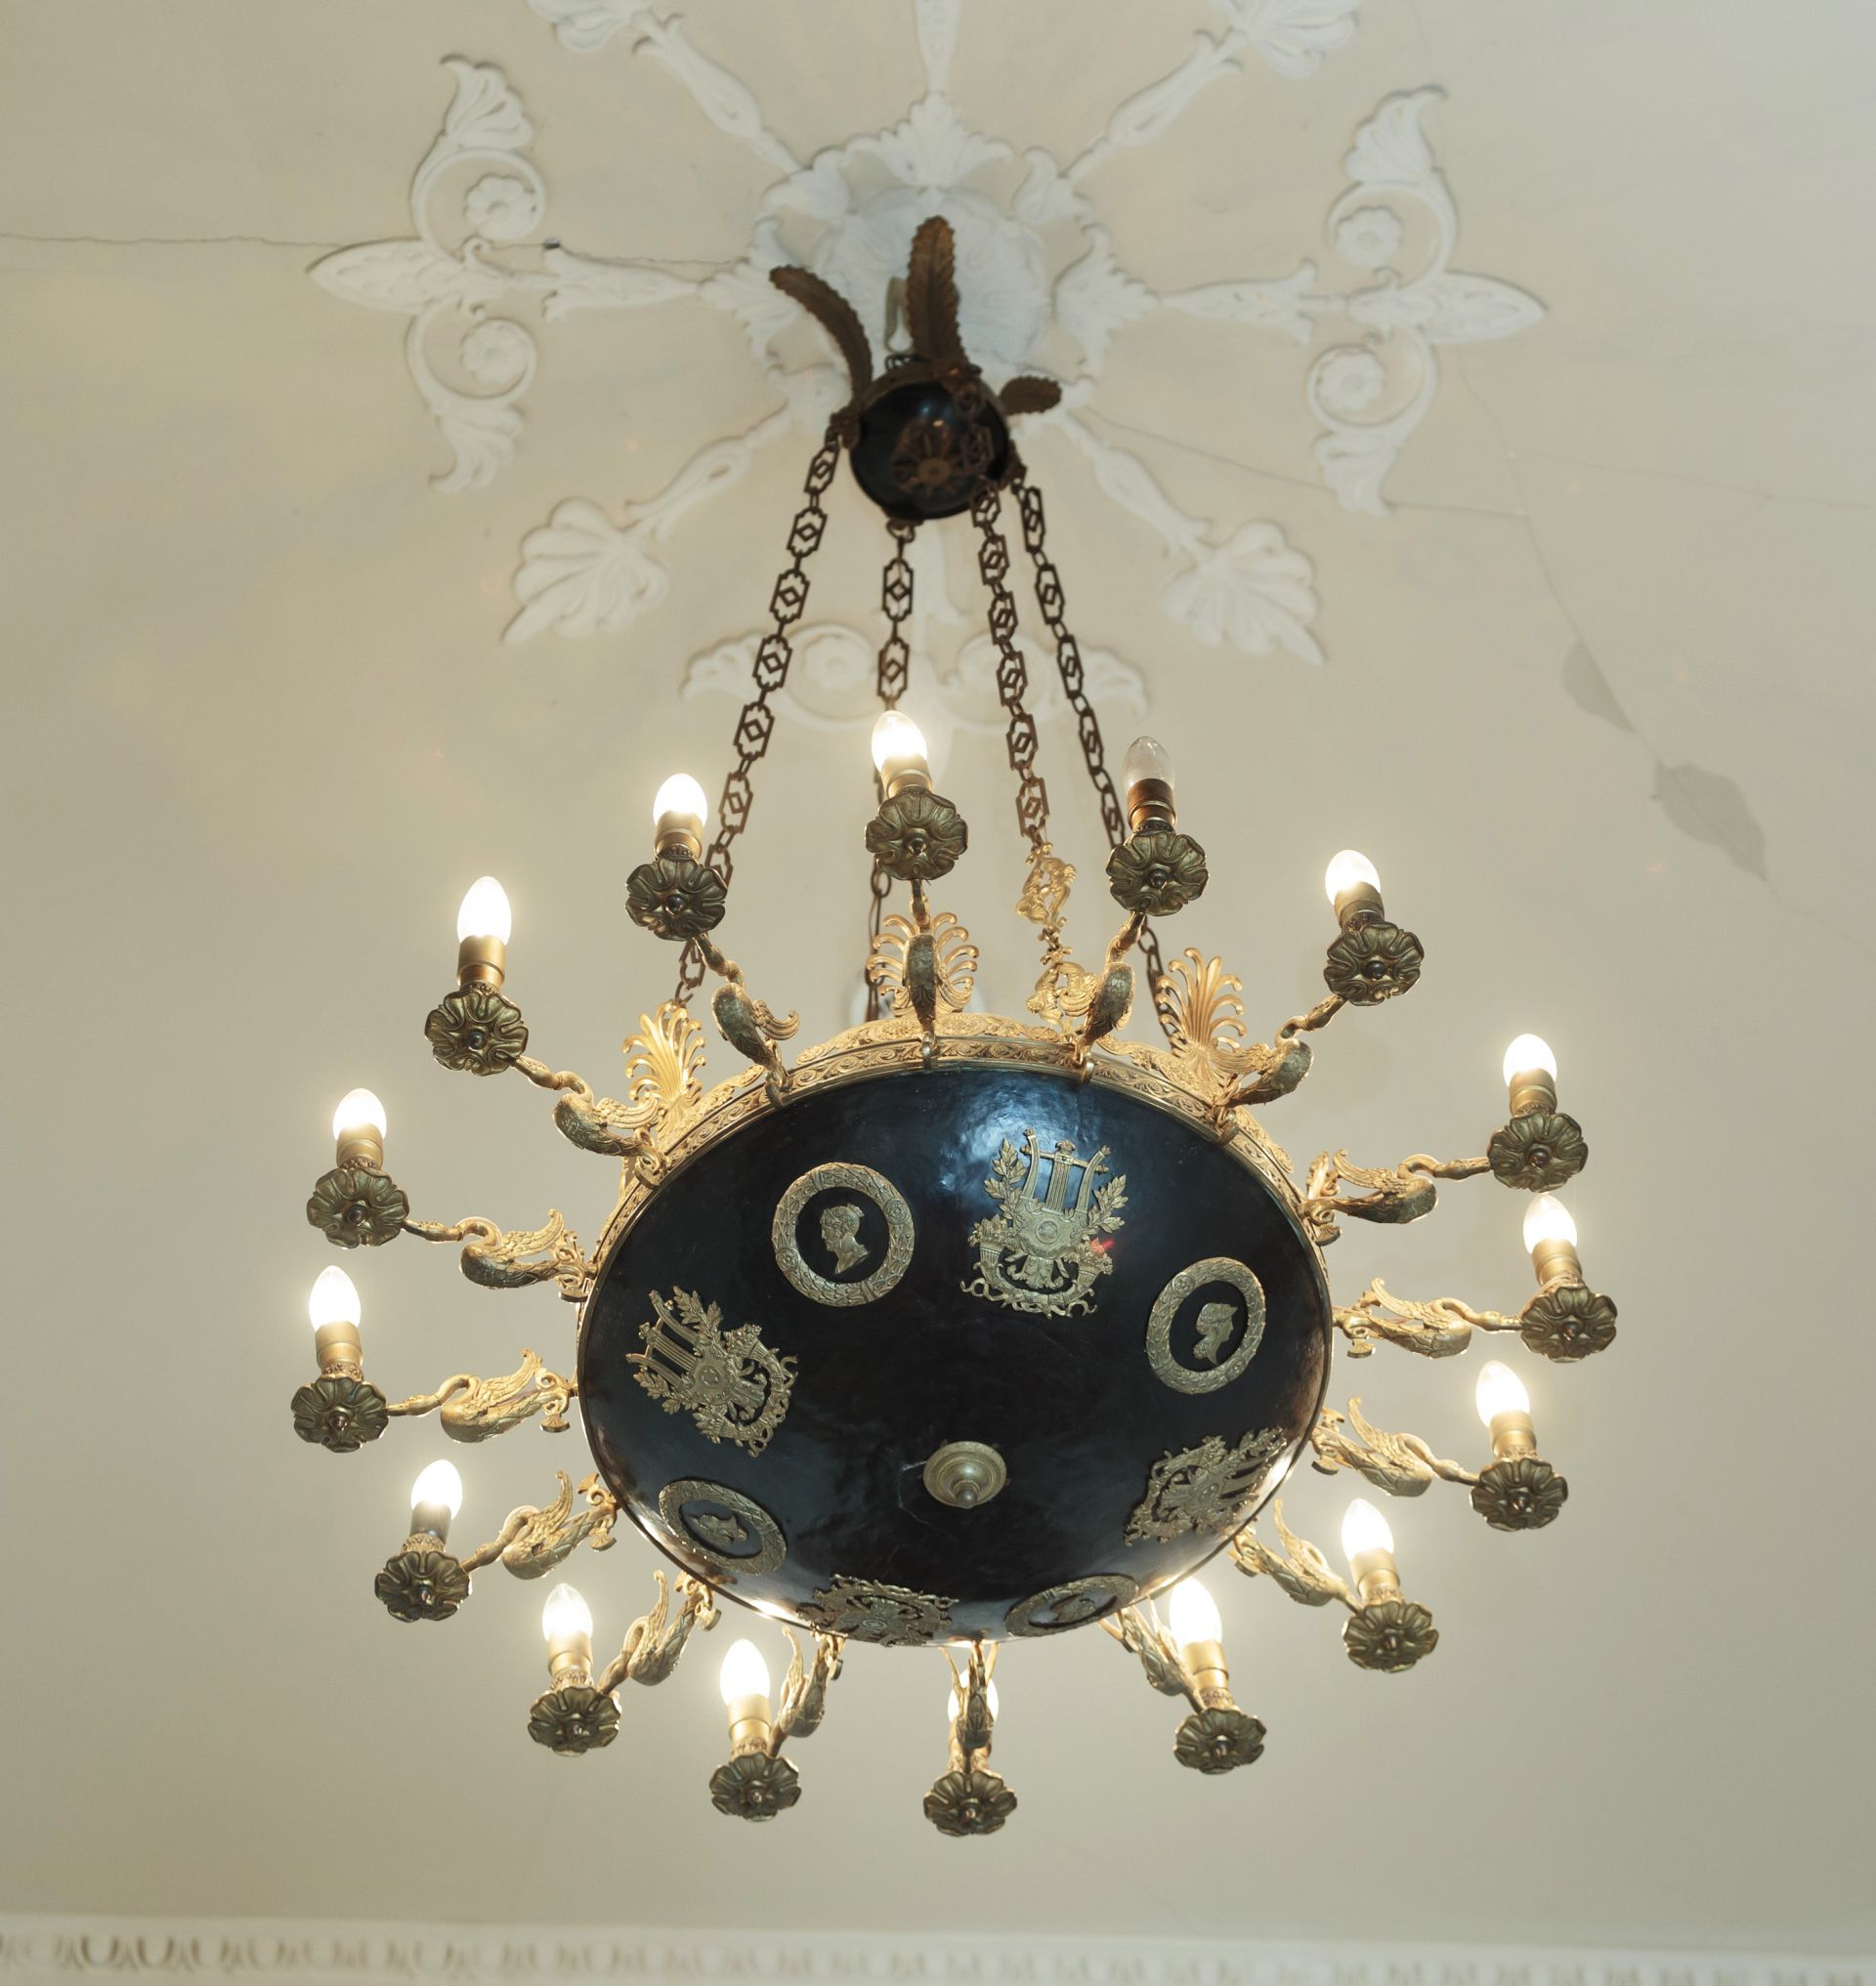 Chandelier, 1800–1829, Lithuanian Art Museum, TM-658. Photo by Tomas Kapočius, 2017